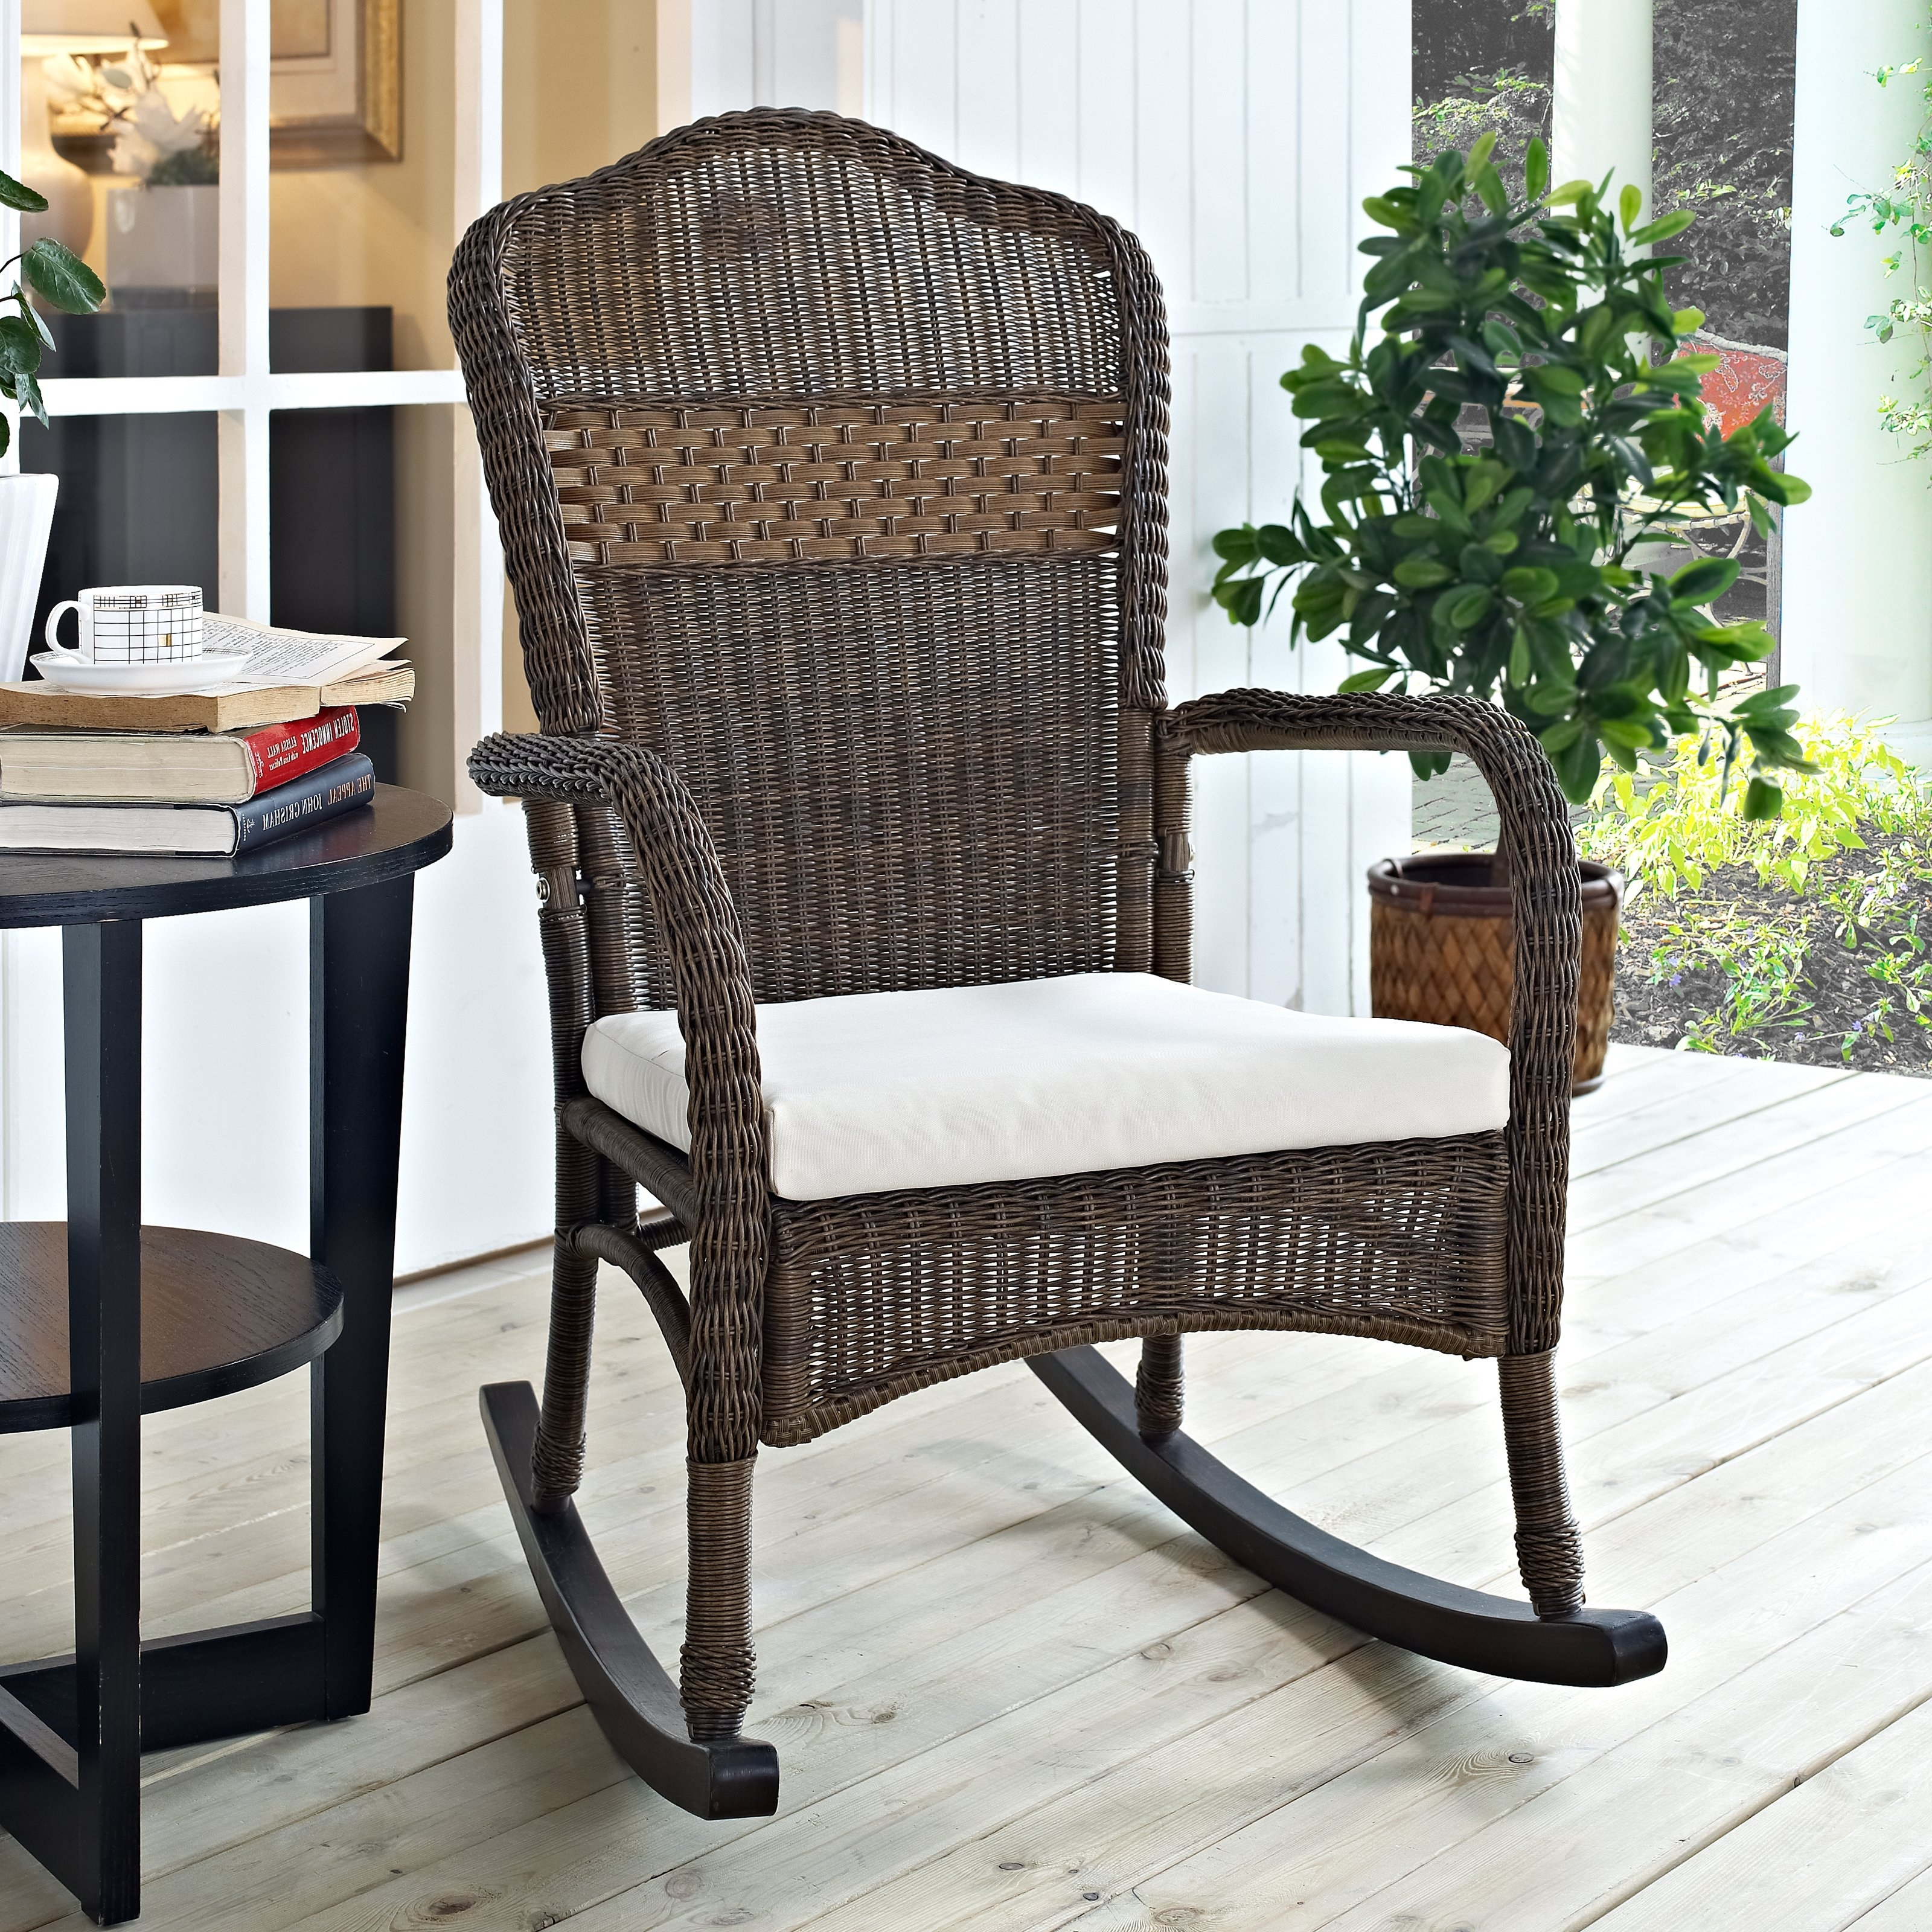 Trendy Patio : White Resin Wicker Patio Furniture Outdoor Set Clearance 94 In White Resin Patio Rocking Chairs (View 14 of 20)